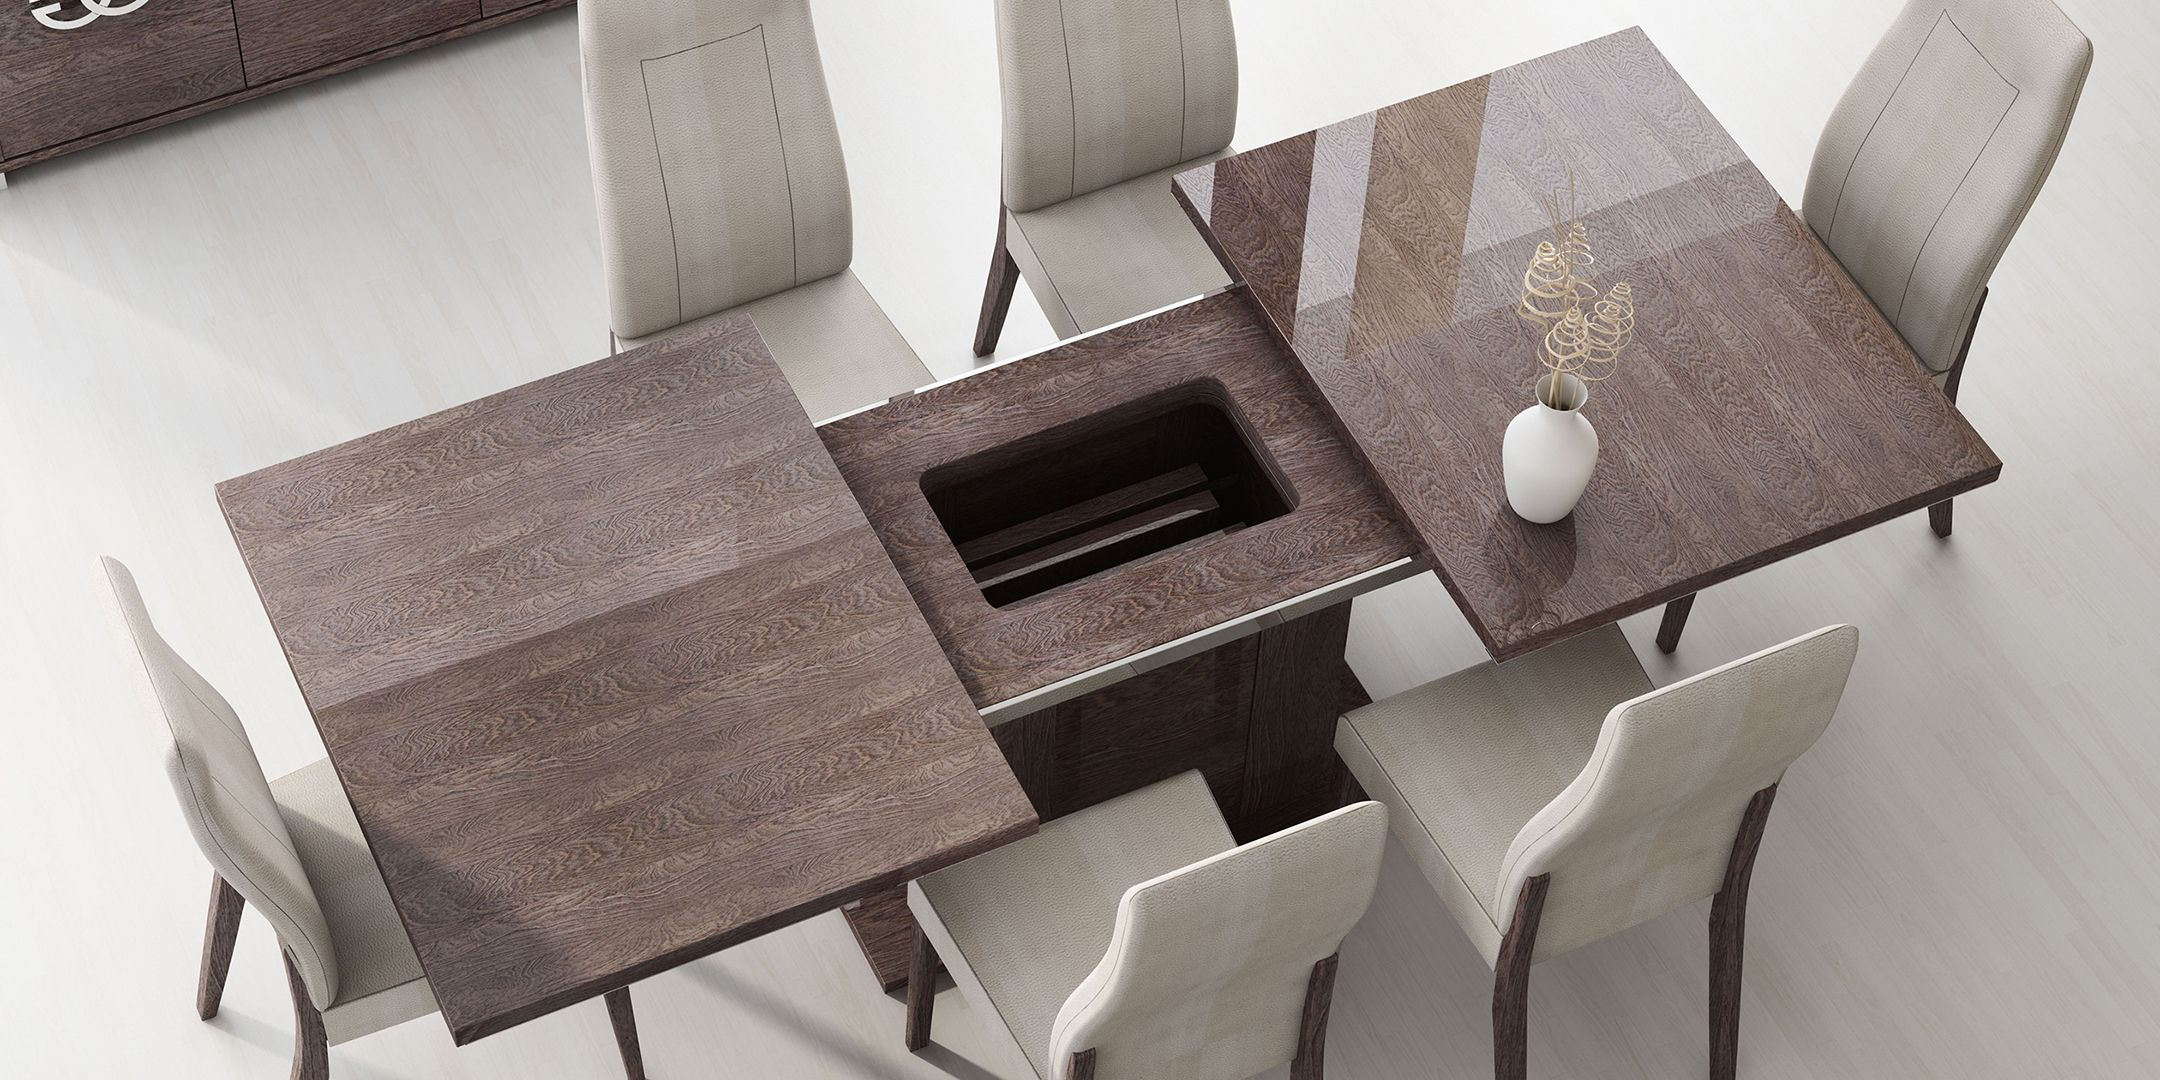 Contemporary Dining Room Tables And Chairs Endearing Dining Room Table And Chairs Contemporary  Google Search  Dining Design Decoration